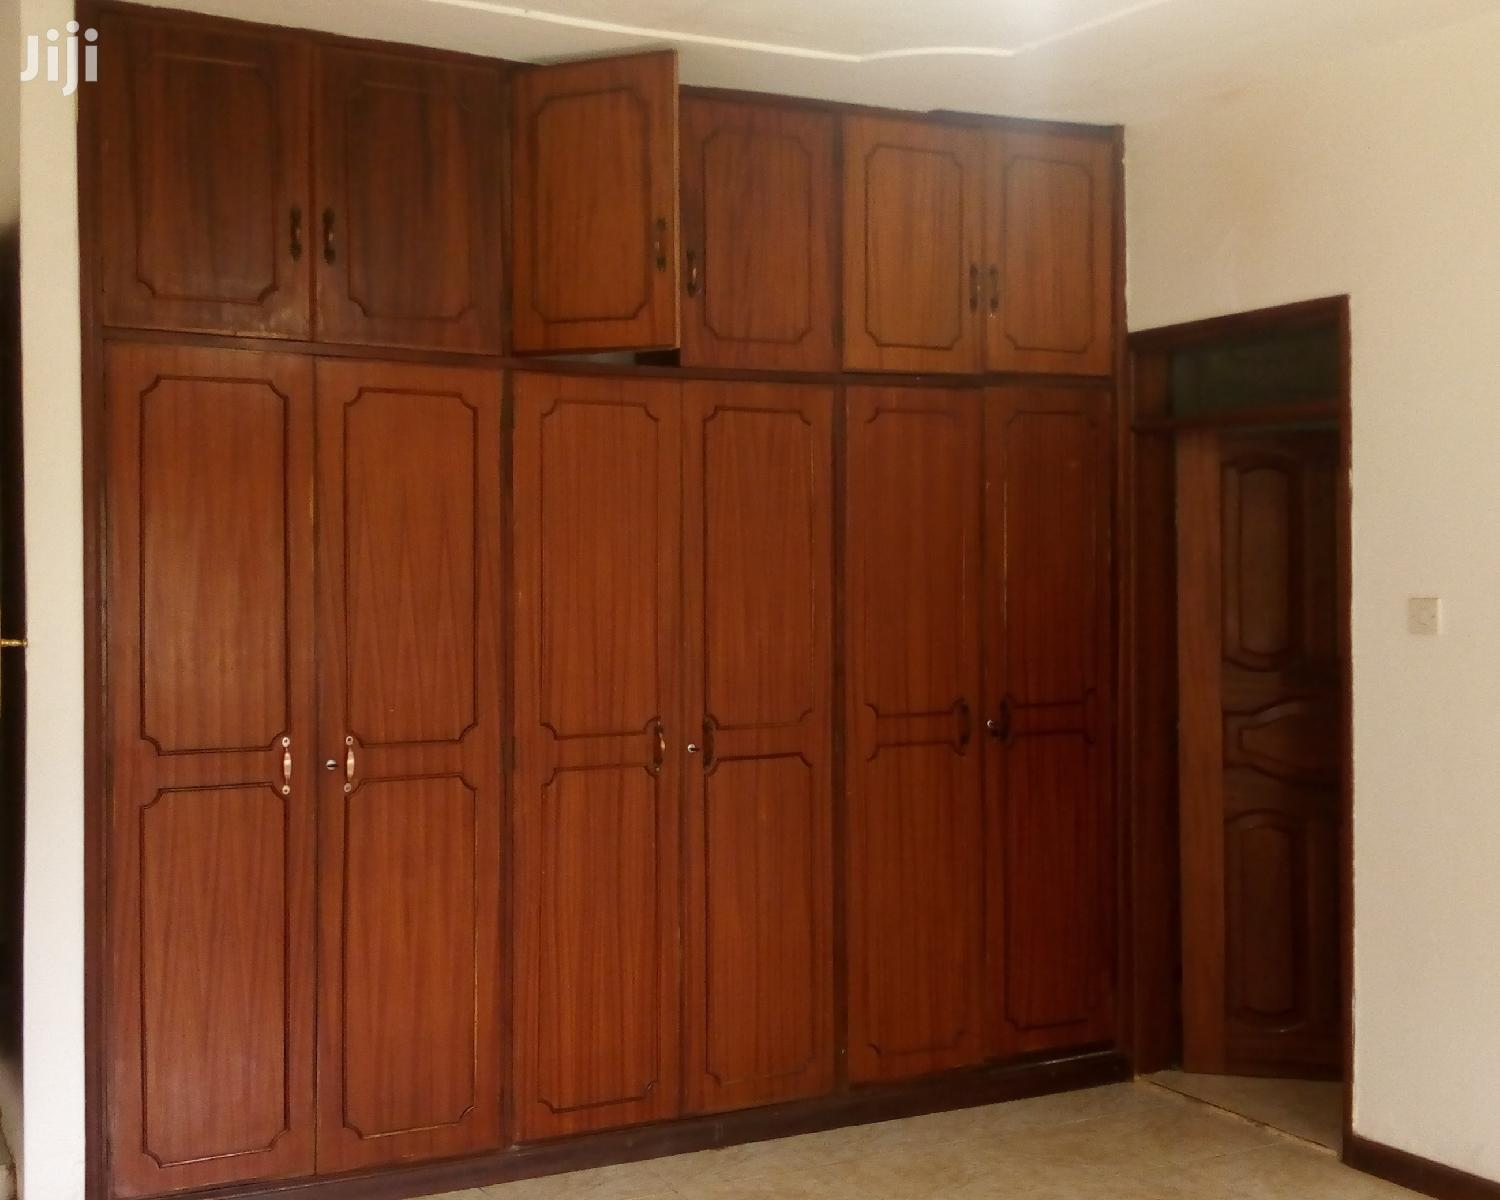 House Is For Rent | Houses & Apartments For Rent for sale in Kampala, Central Region, Uganda